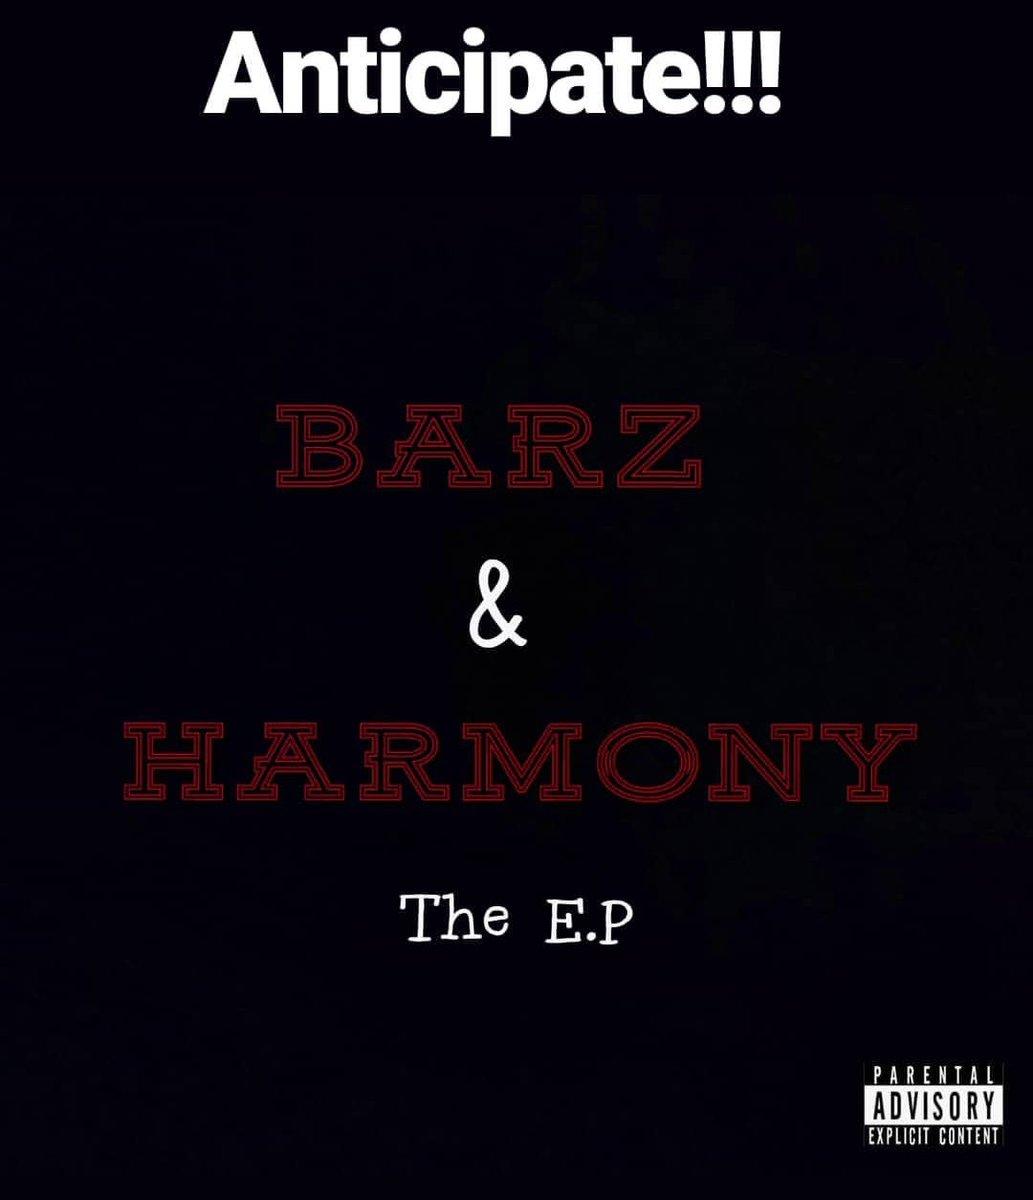 The E.P is almost ready...it&#39;s gonna be fire i promise #BarzAndHarmony  #artwork #albumcover #soundcloud #linkinbio #EP #albumart #Rapper #Singer #Producer #rap #harmony #music #Entrepreneur #Entertainer #hiphop #afrobeats #afrohiphop #trap #blues #dancehall #afrodancehall<br>http://pic.twitter.com/DHkrvOvzpf